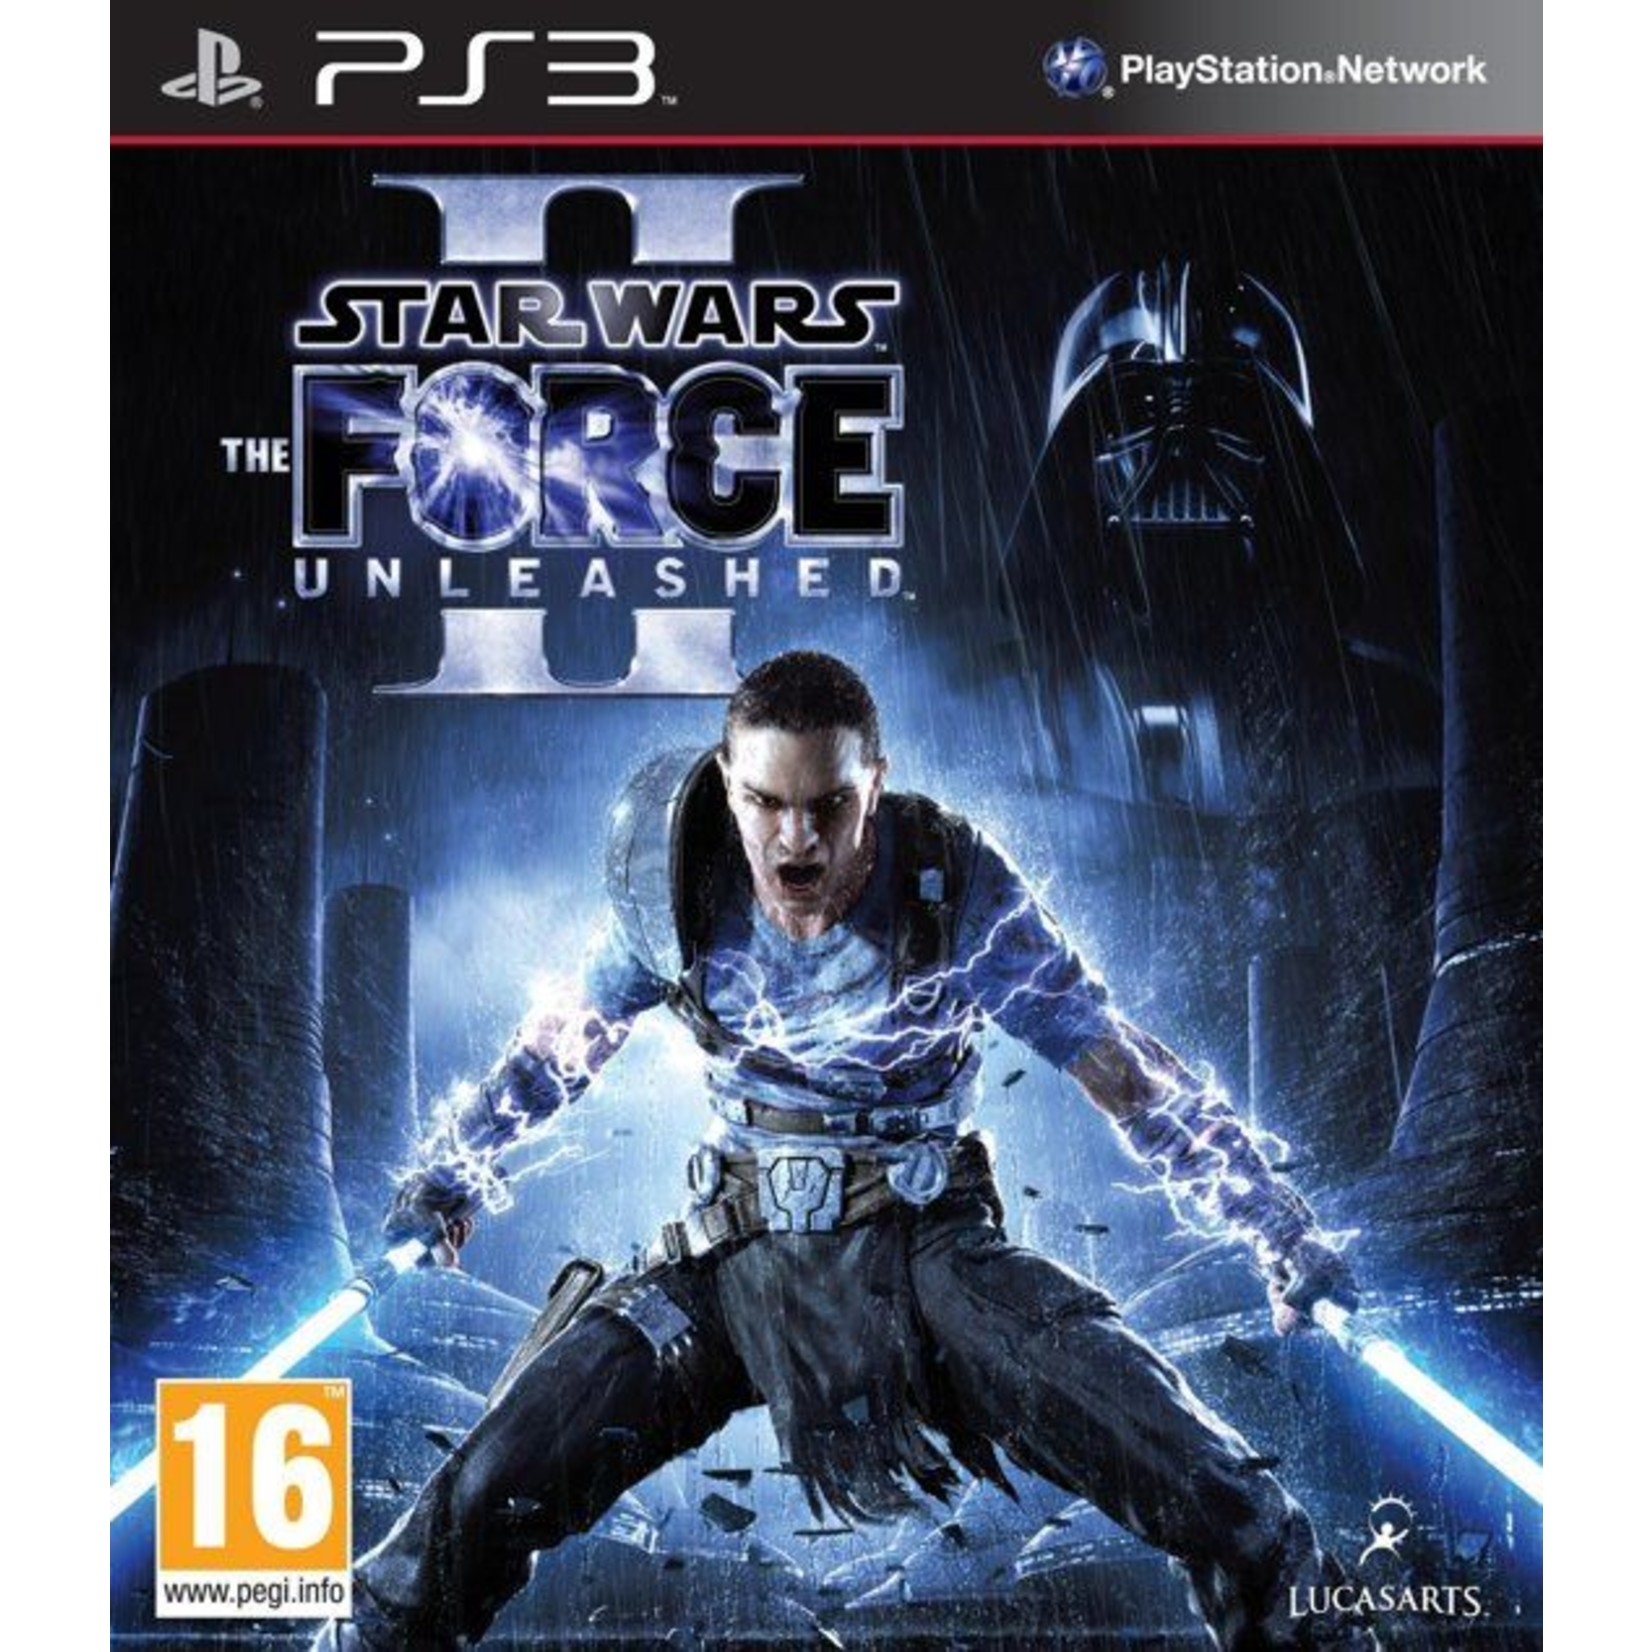 Star Wars - Force Unleashed 2